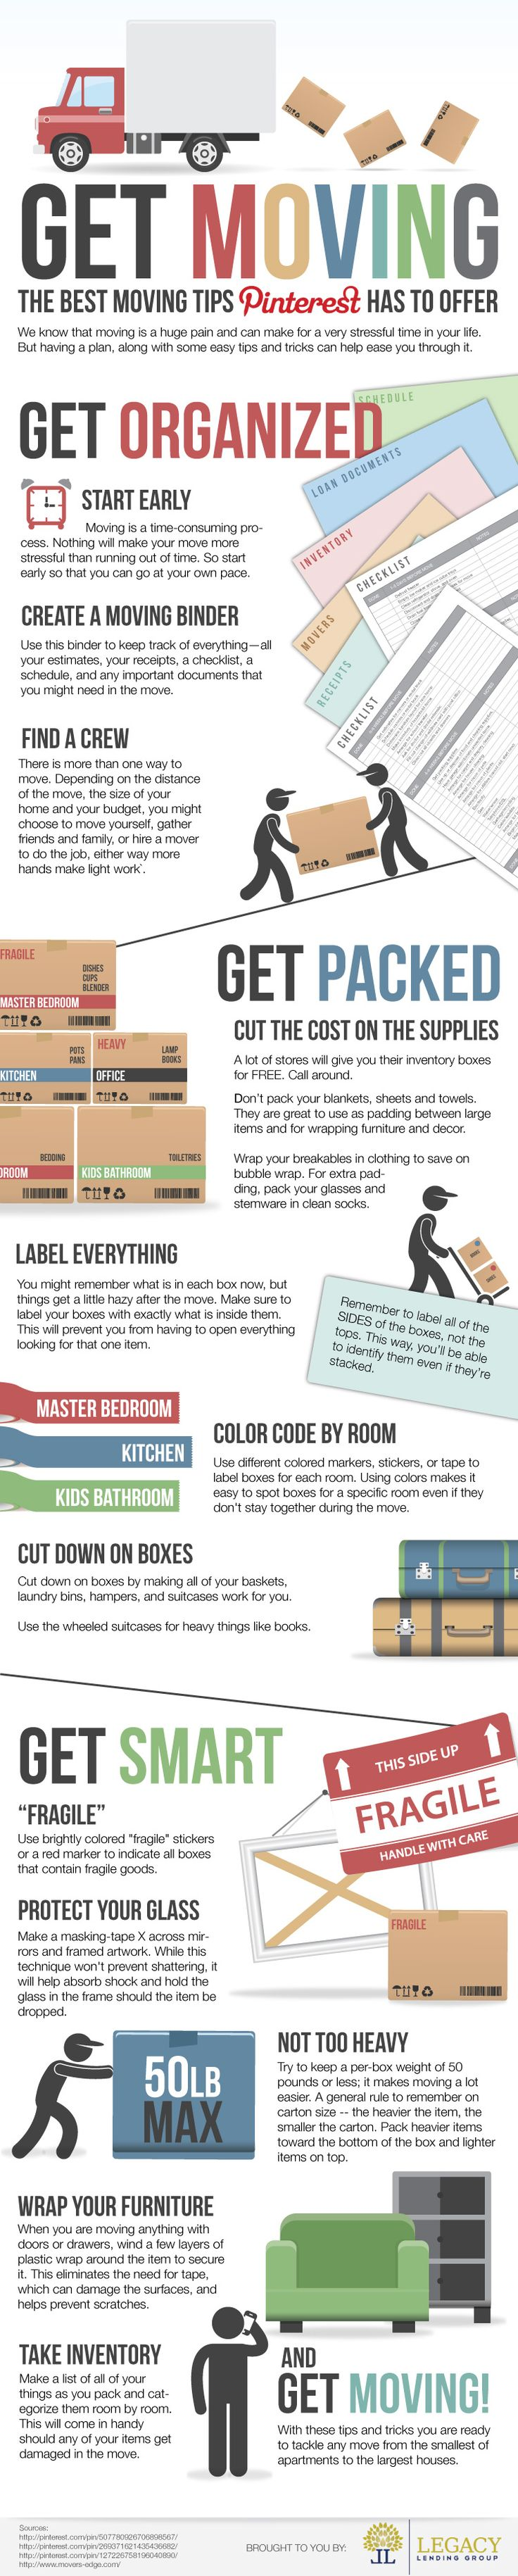 infographic the best moving tips pinterest can offer